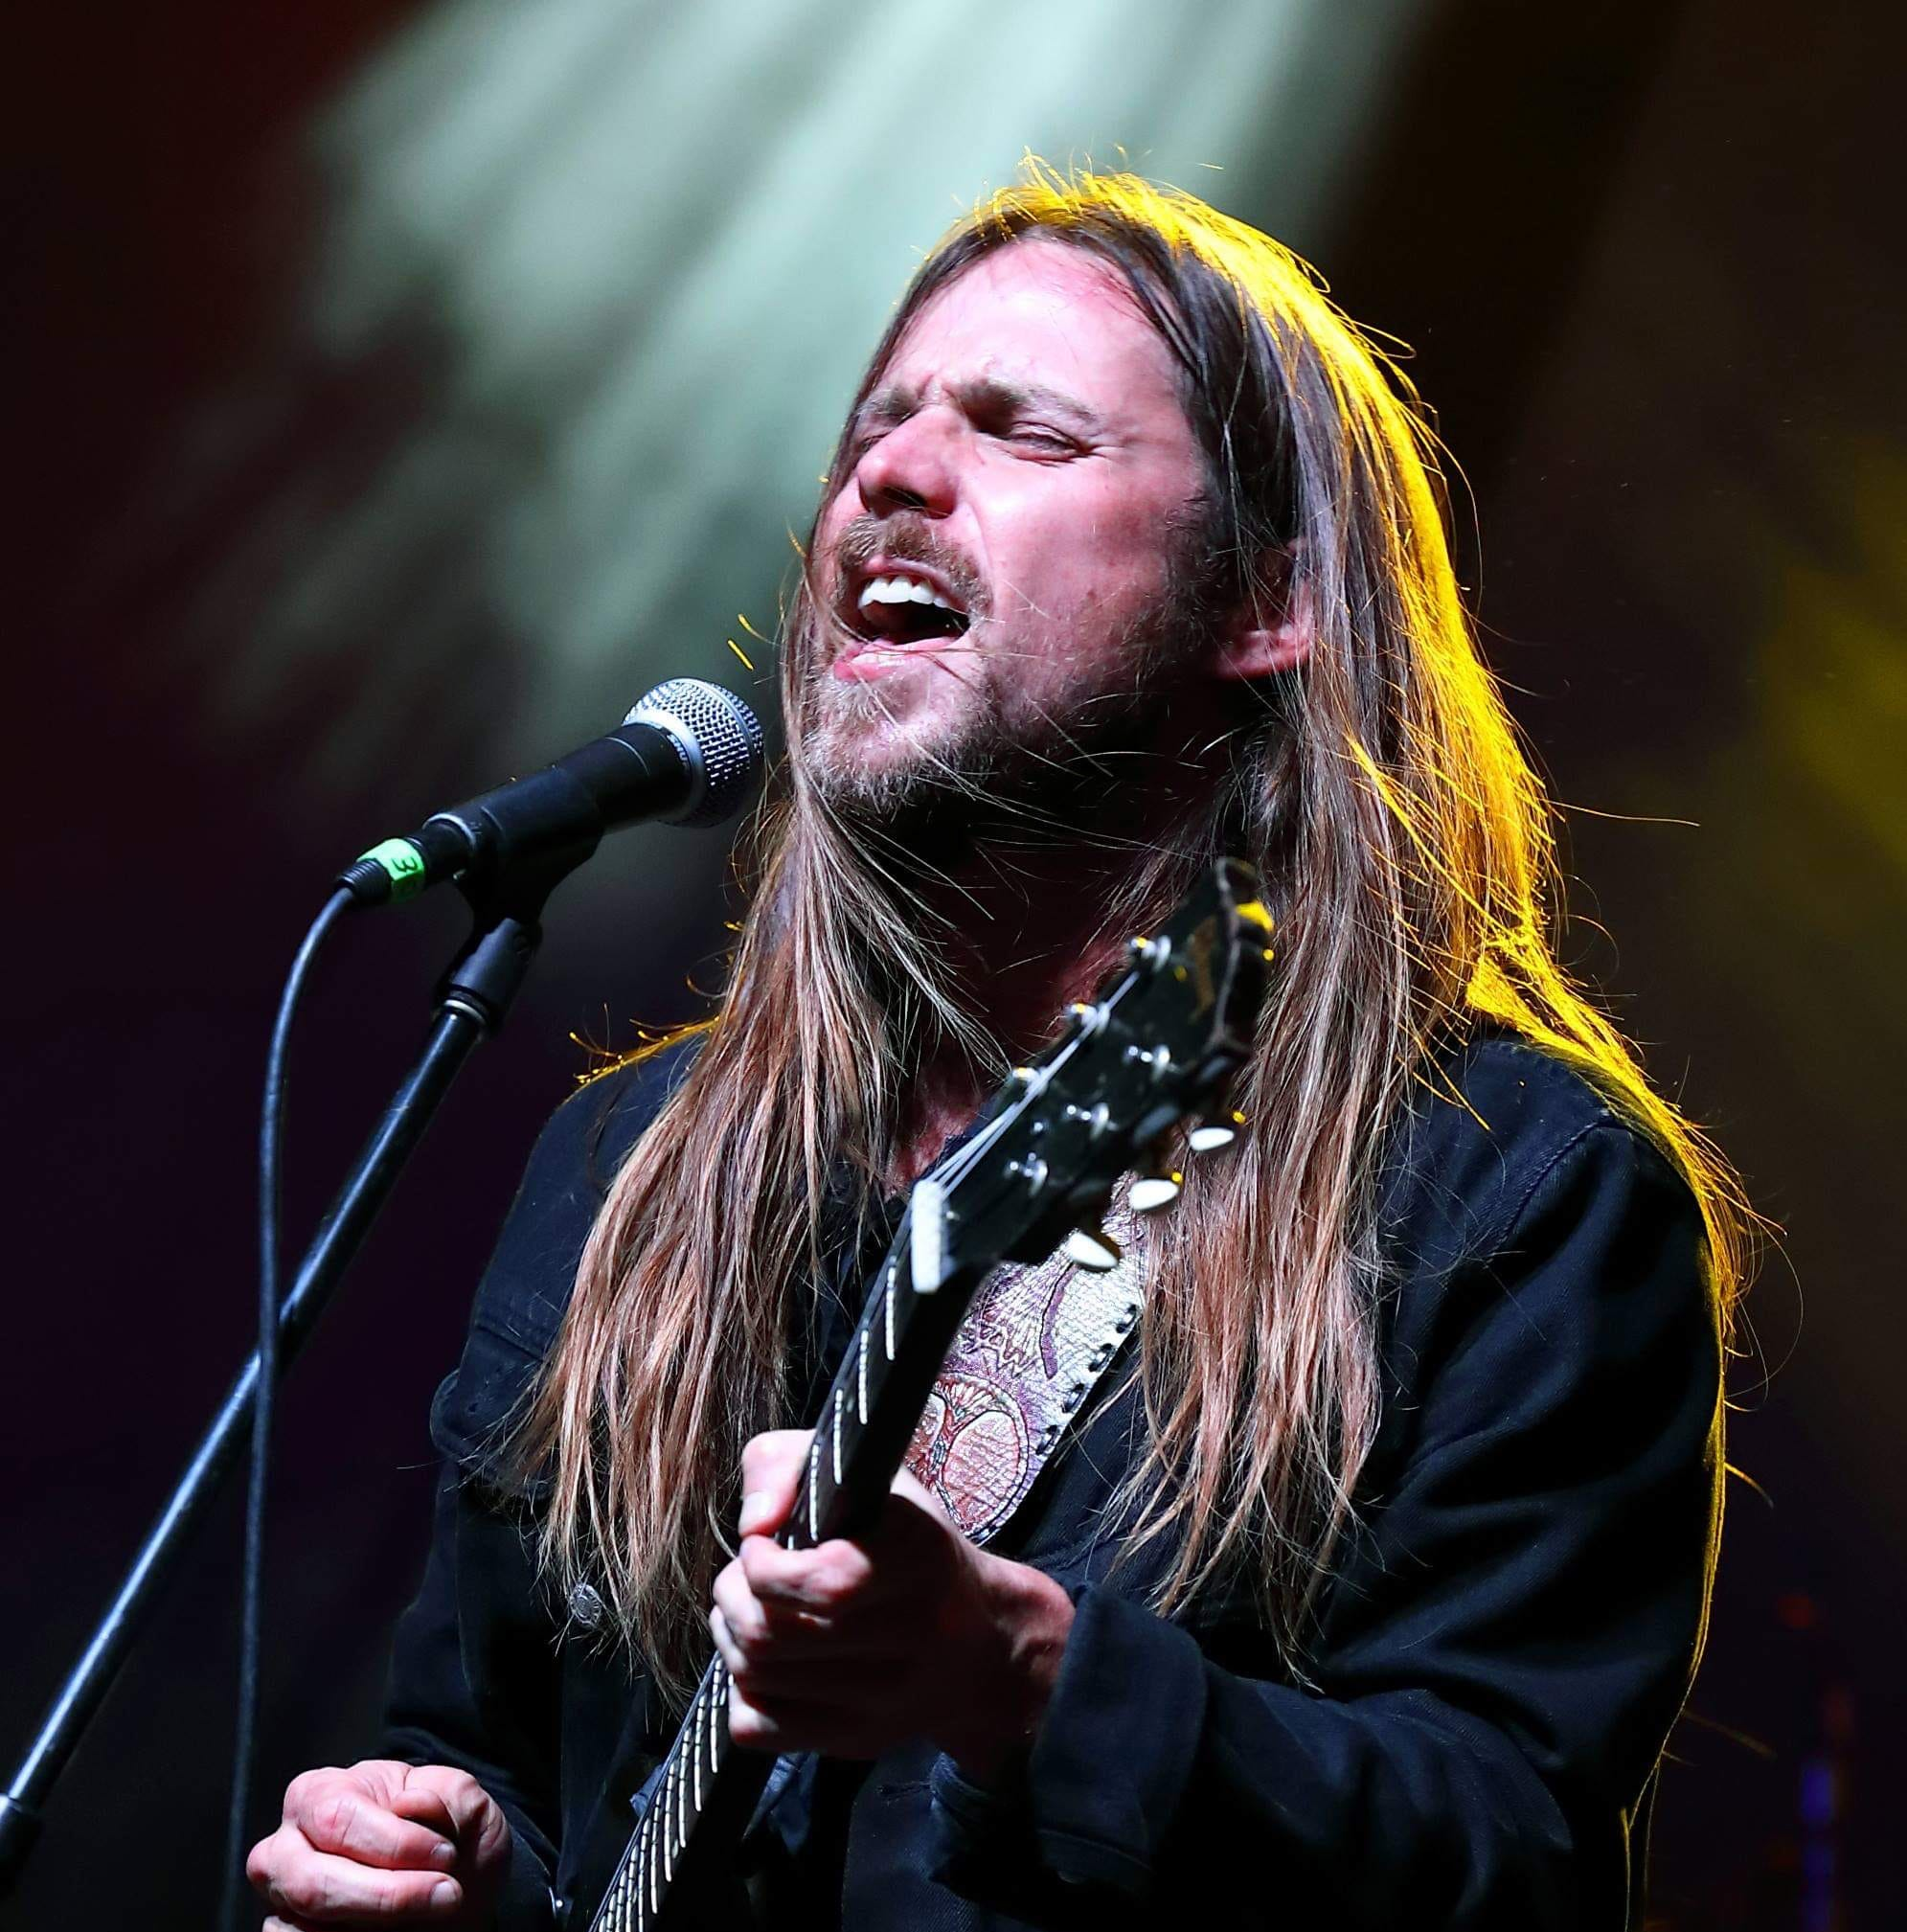 Lukas Nelson, Buddy Guy and Toby Lee, 14, lead shred fest at Garden Jam, Indian Wells